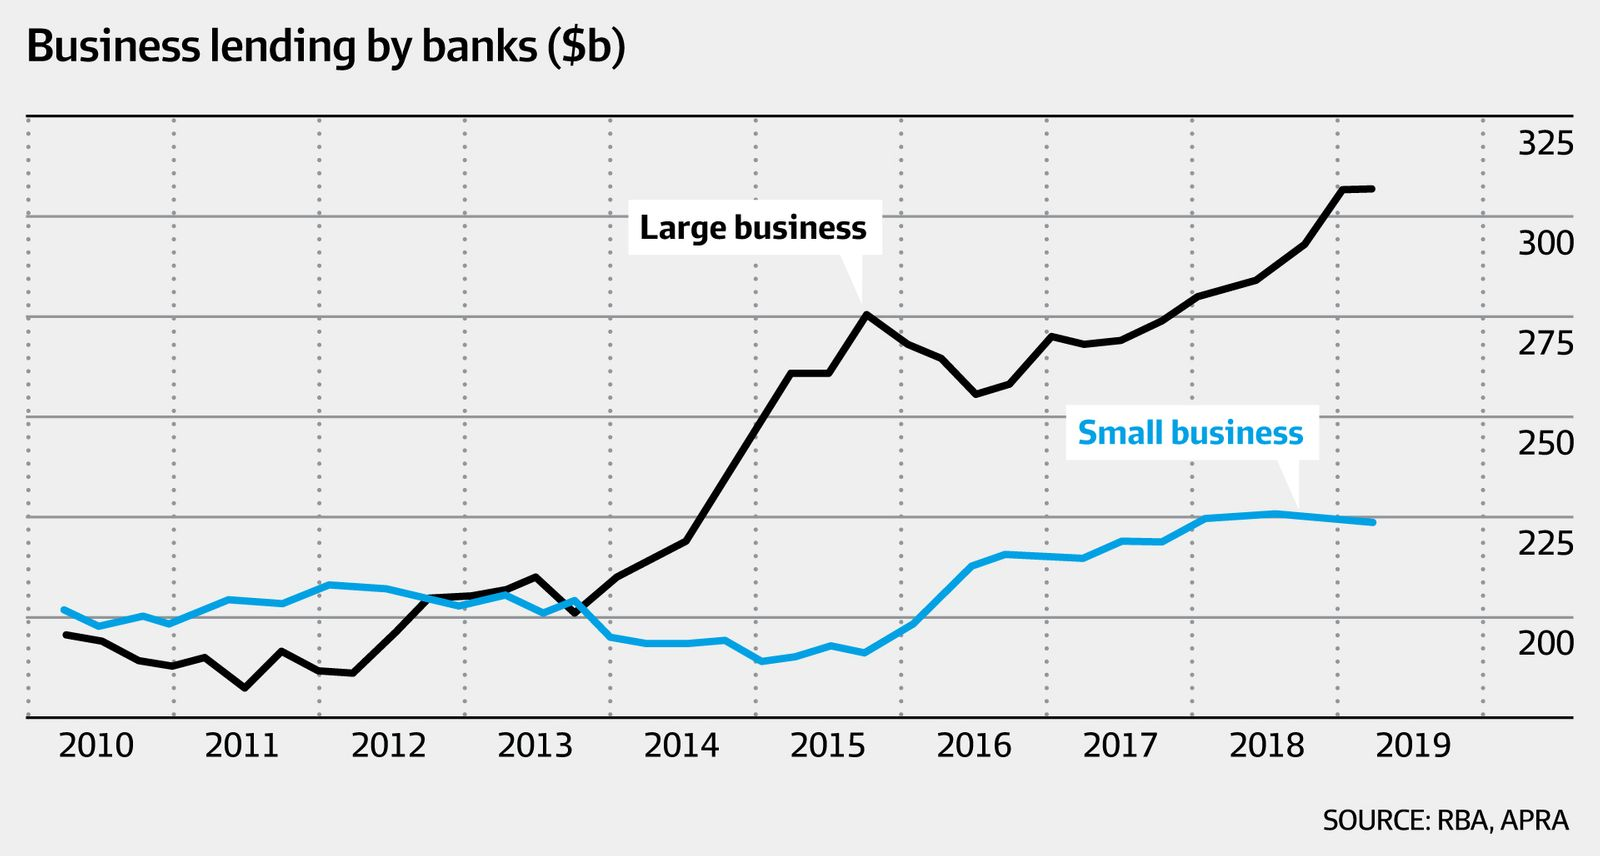 Business lending by banks (RBA, APRA, AFR)